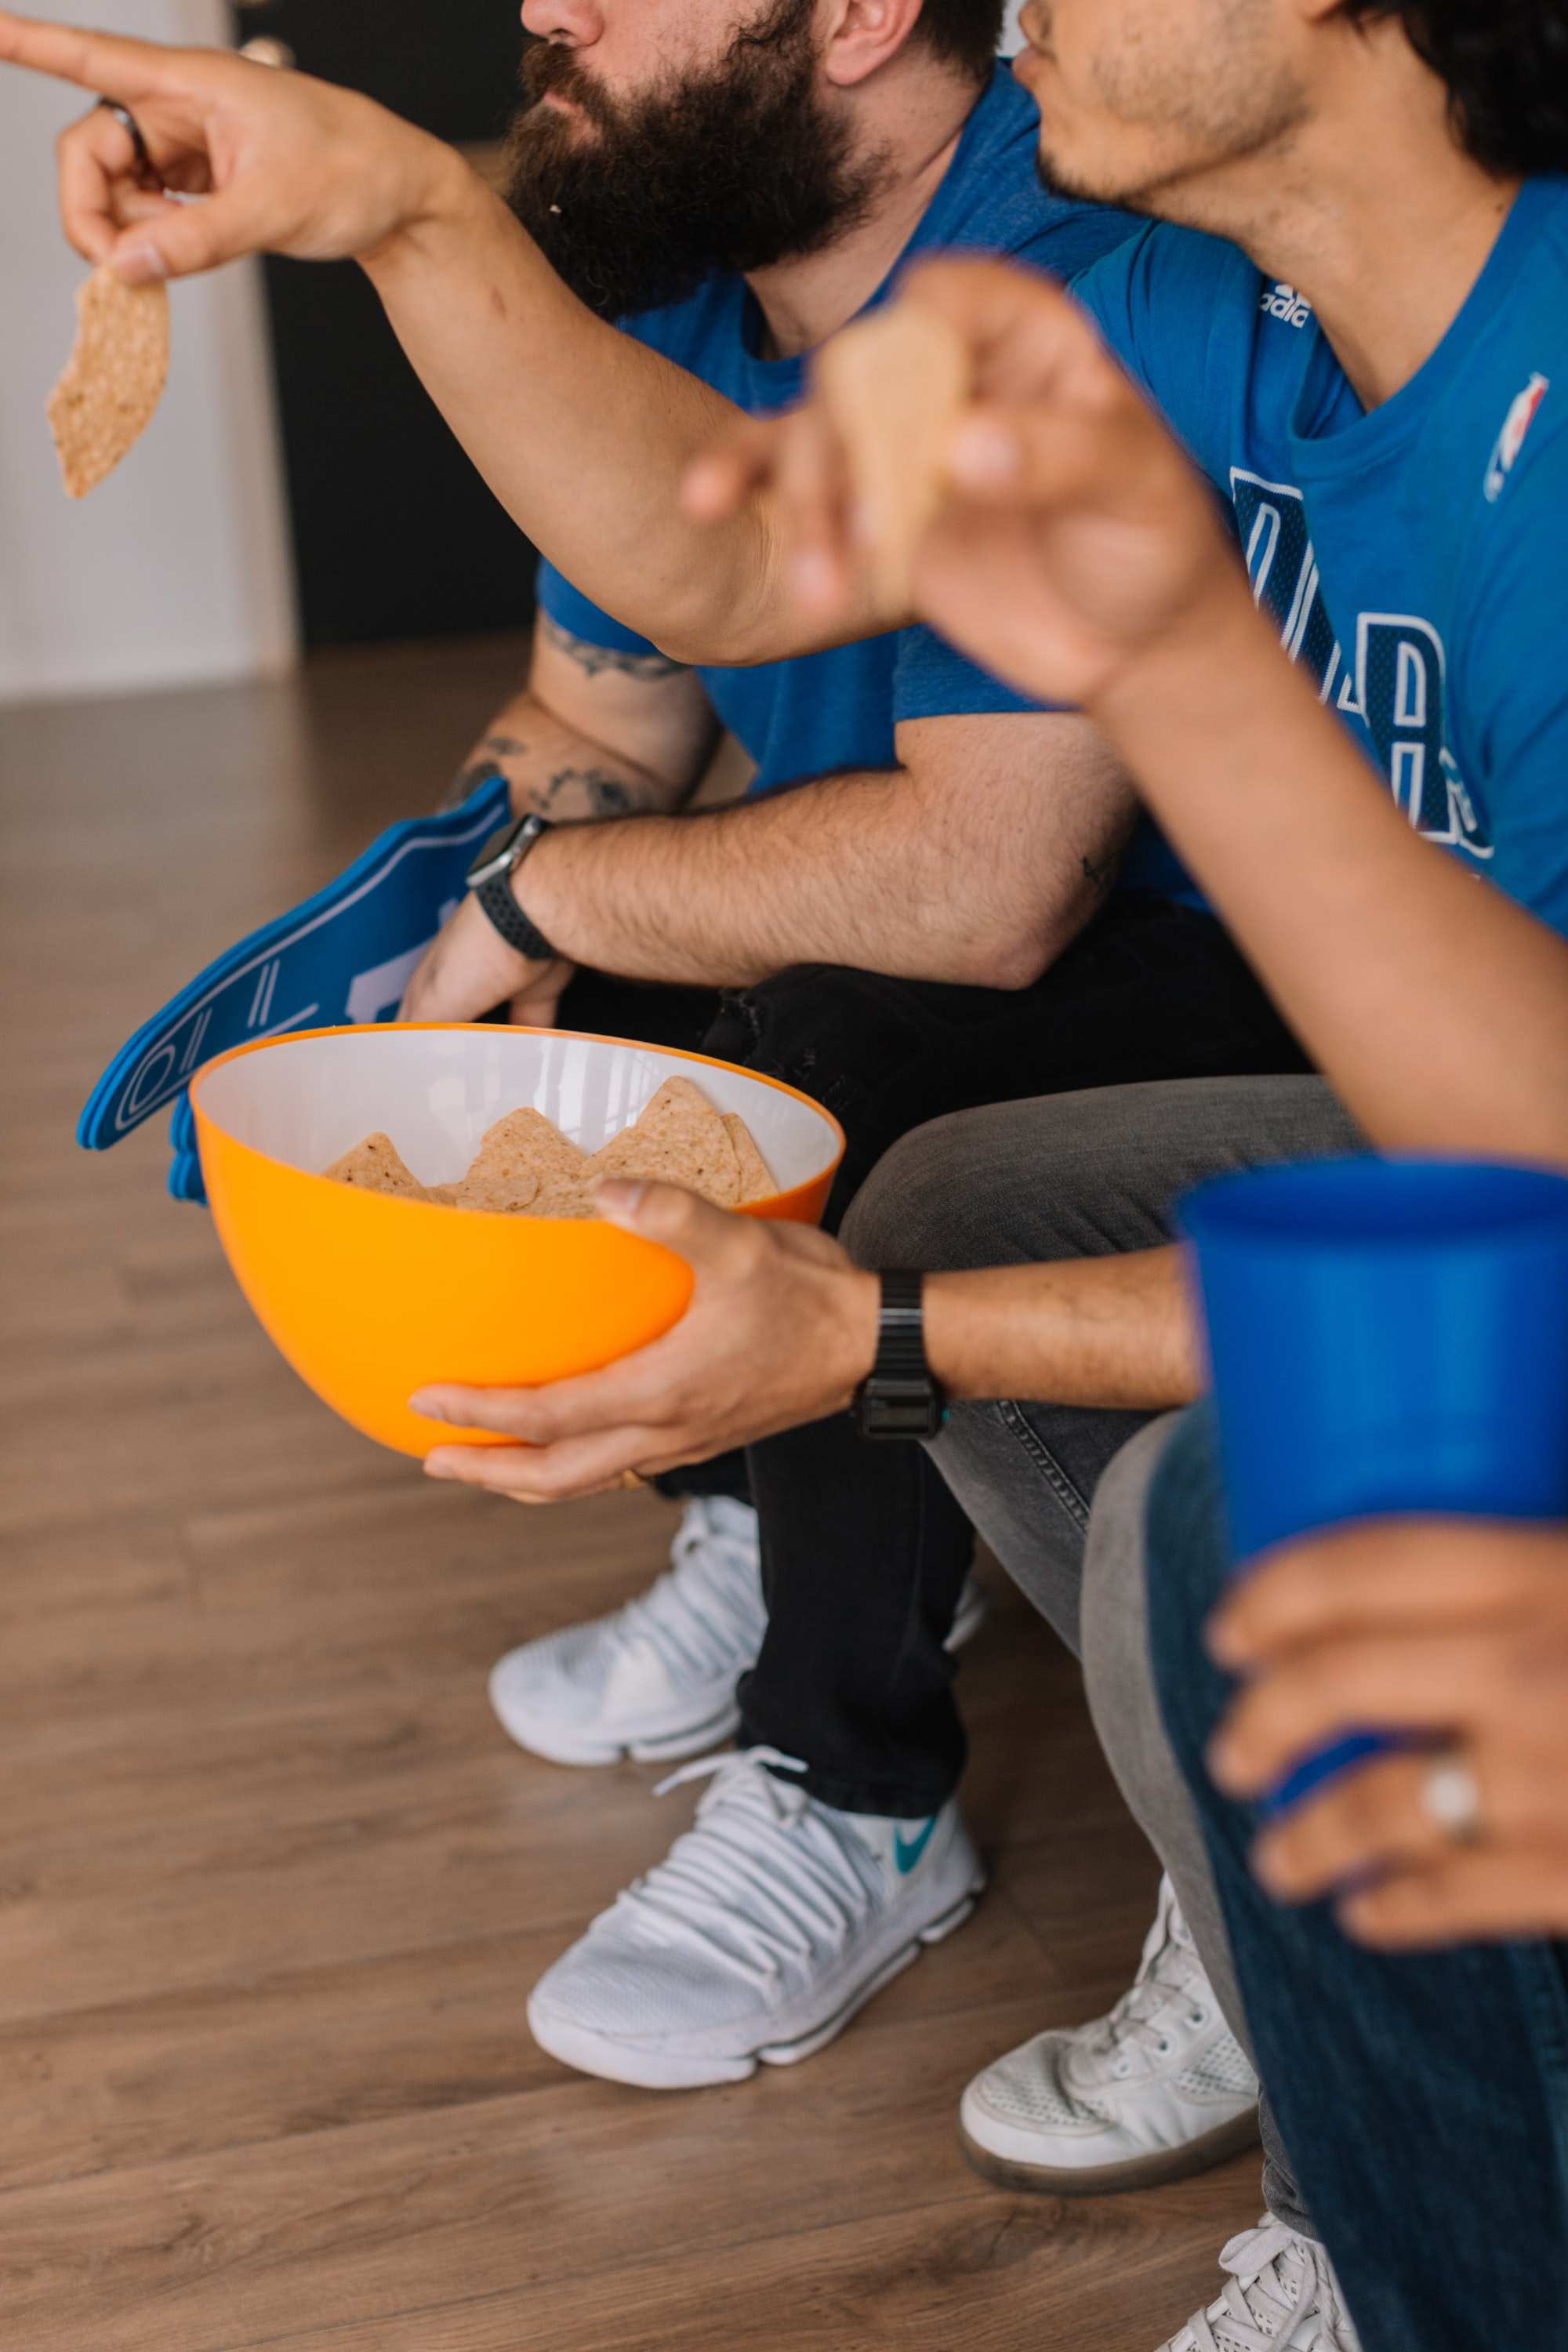 Group of friends watching a sports game on tv while eating chips and dressed in blue